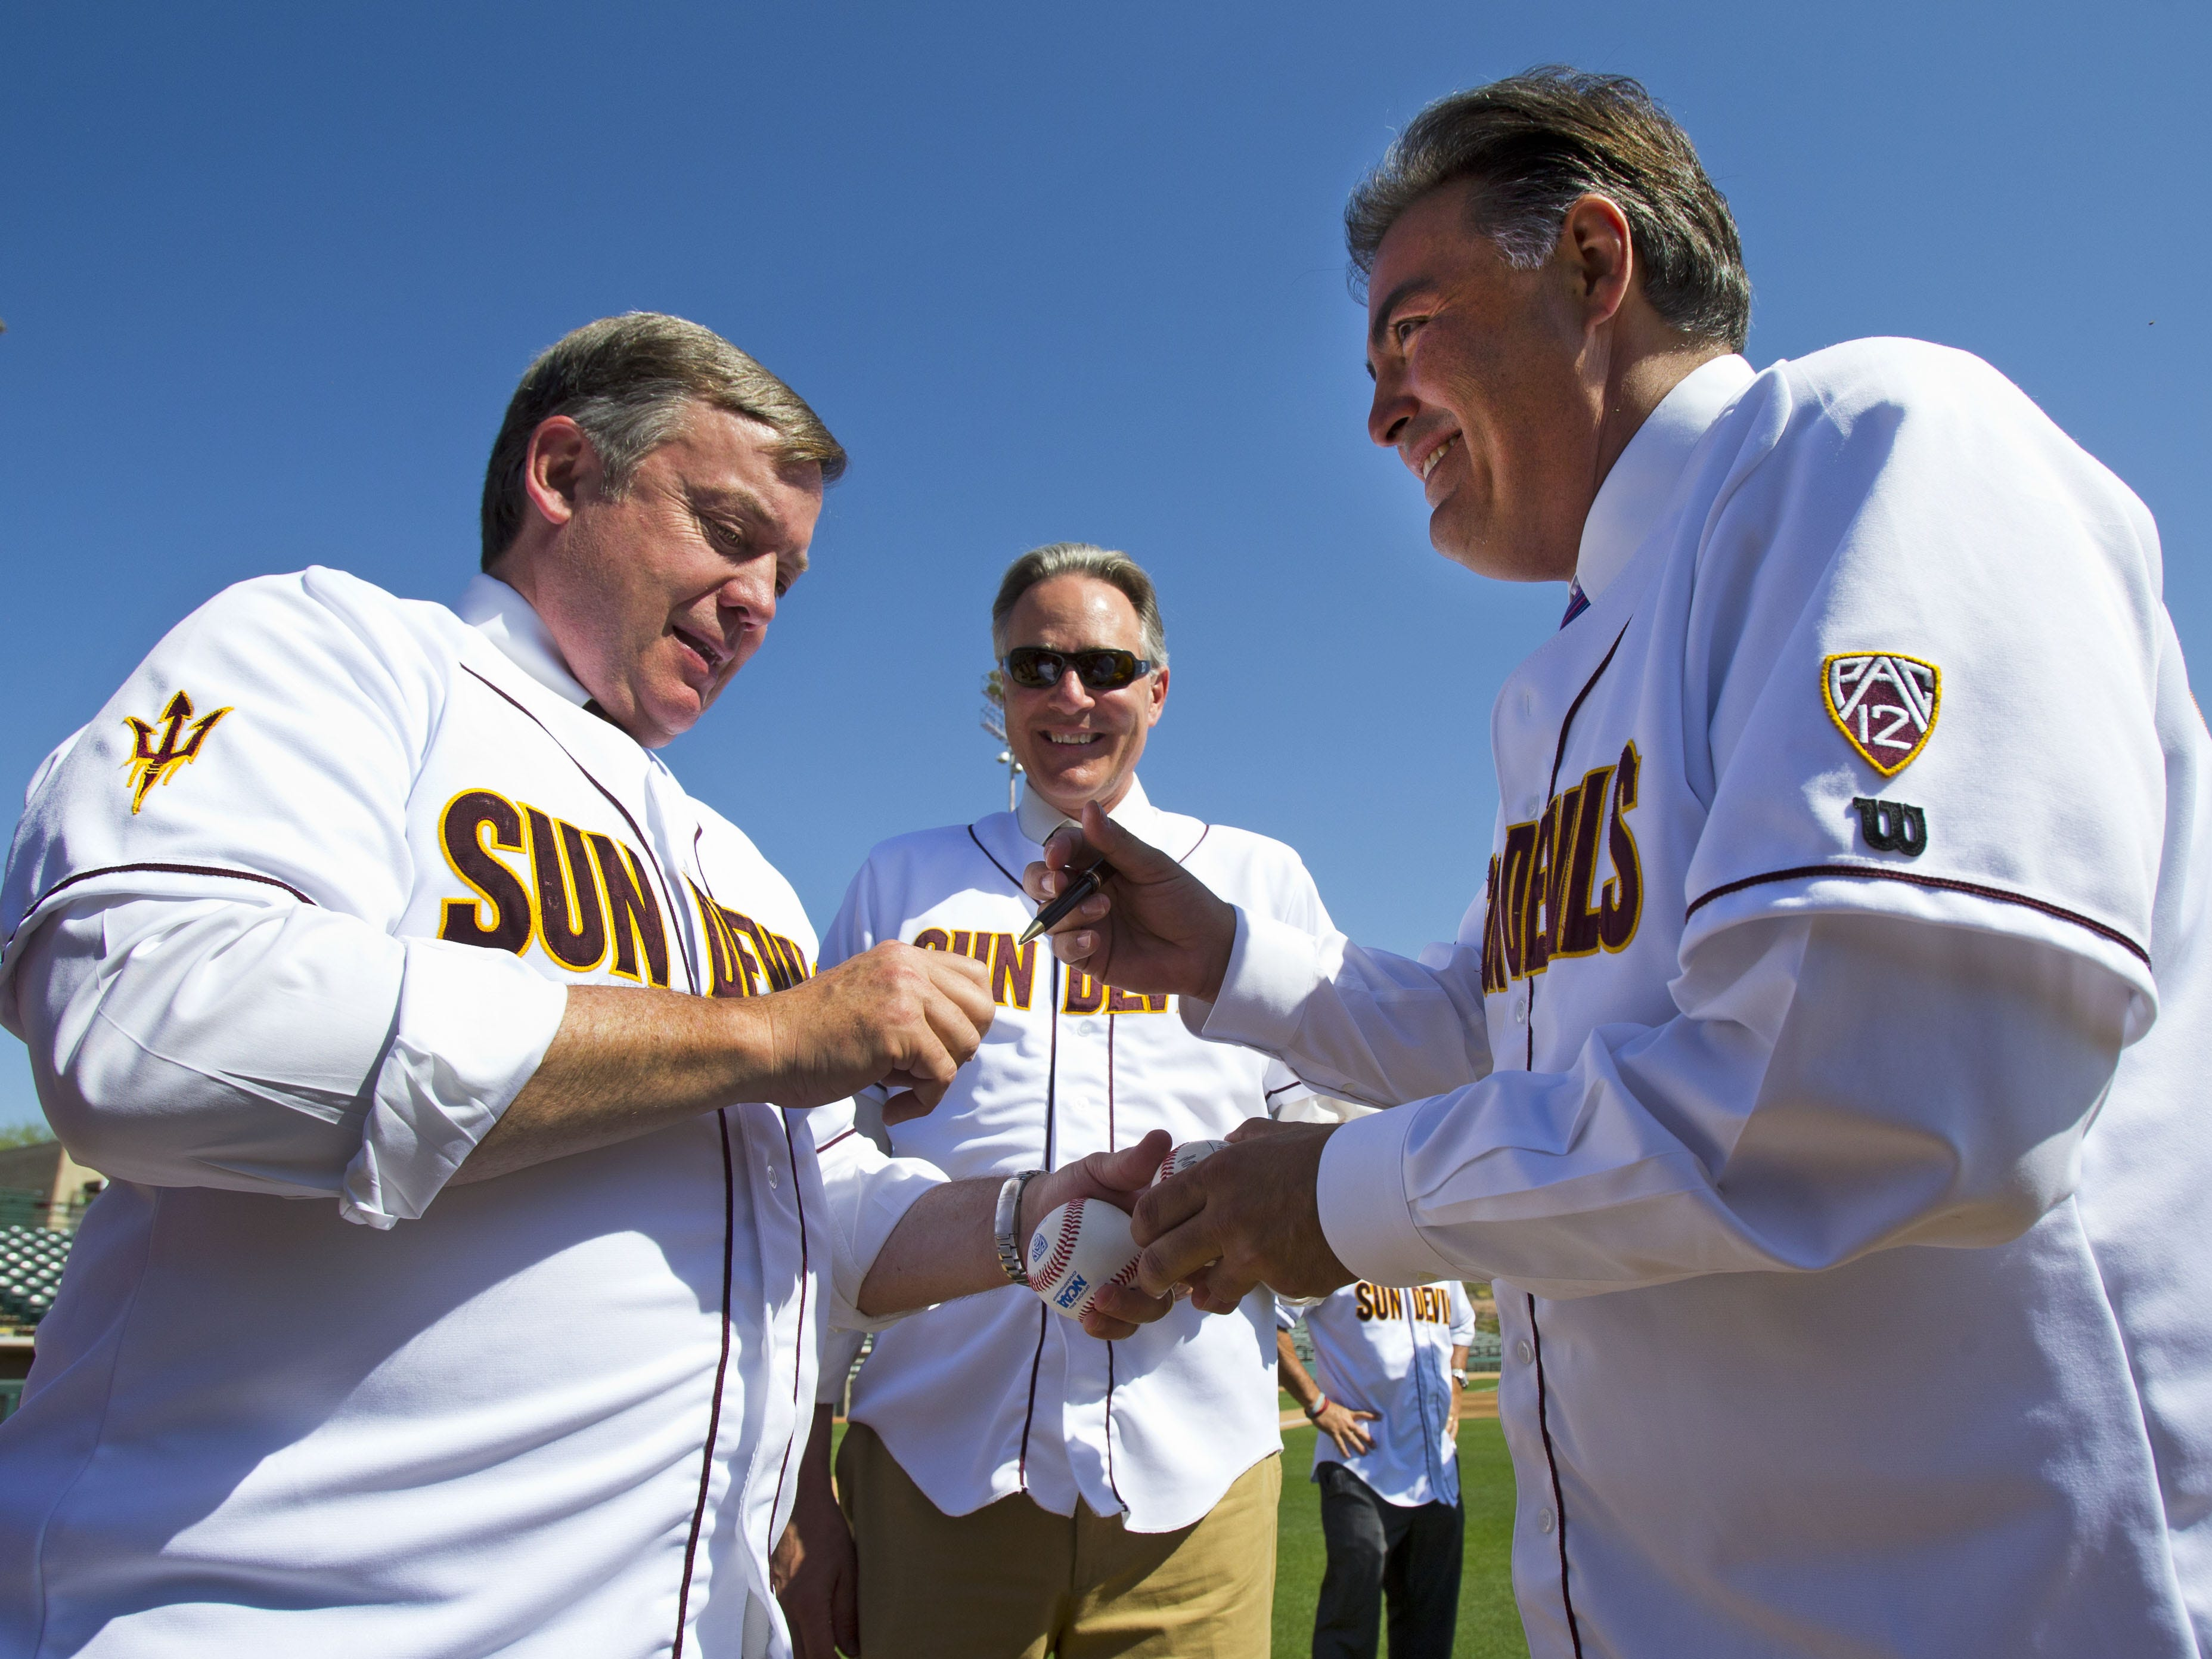 ASU President Michael Crow (left) signs a baseball for former Phoenix City Manager David Cavazos (right) in 2013. This was after a press conference that announced ASU's baseball team's move to the Phoenix Municipal Stadium.